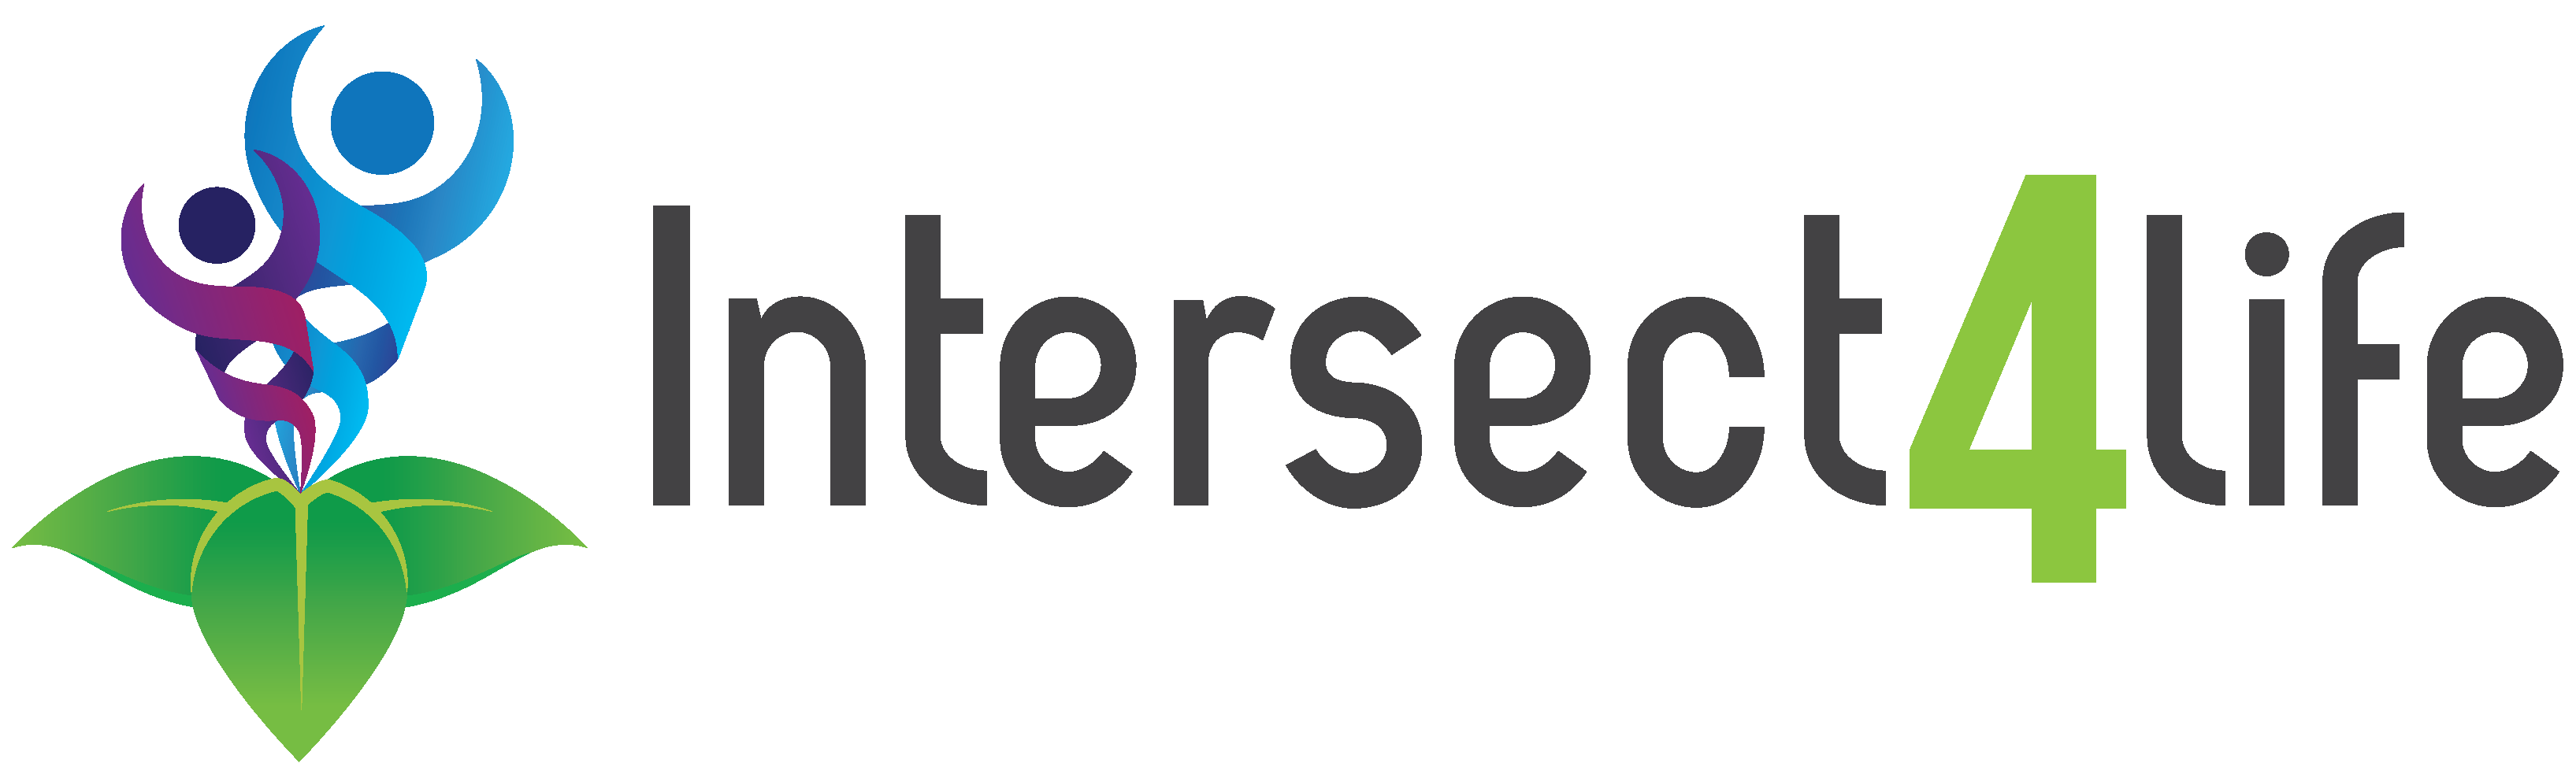 Intersect4Life logo dark 1